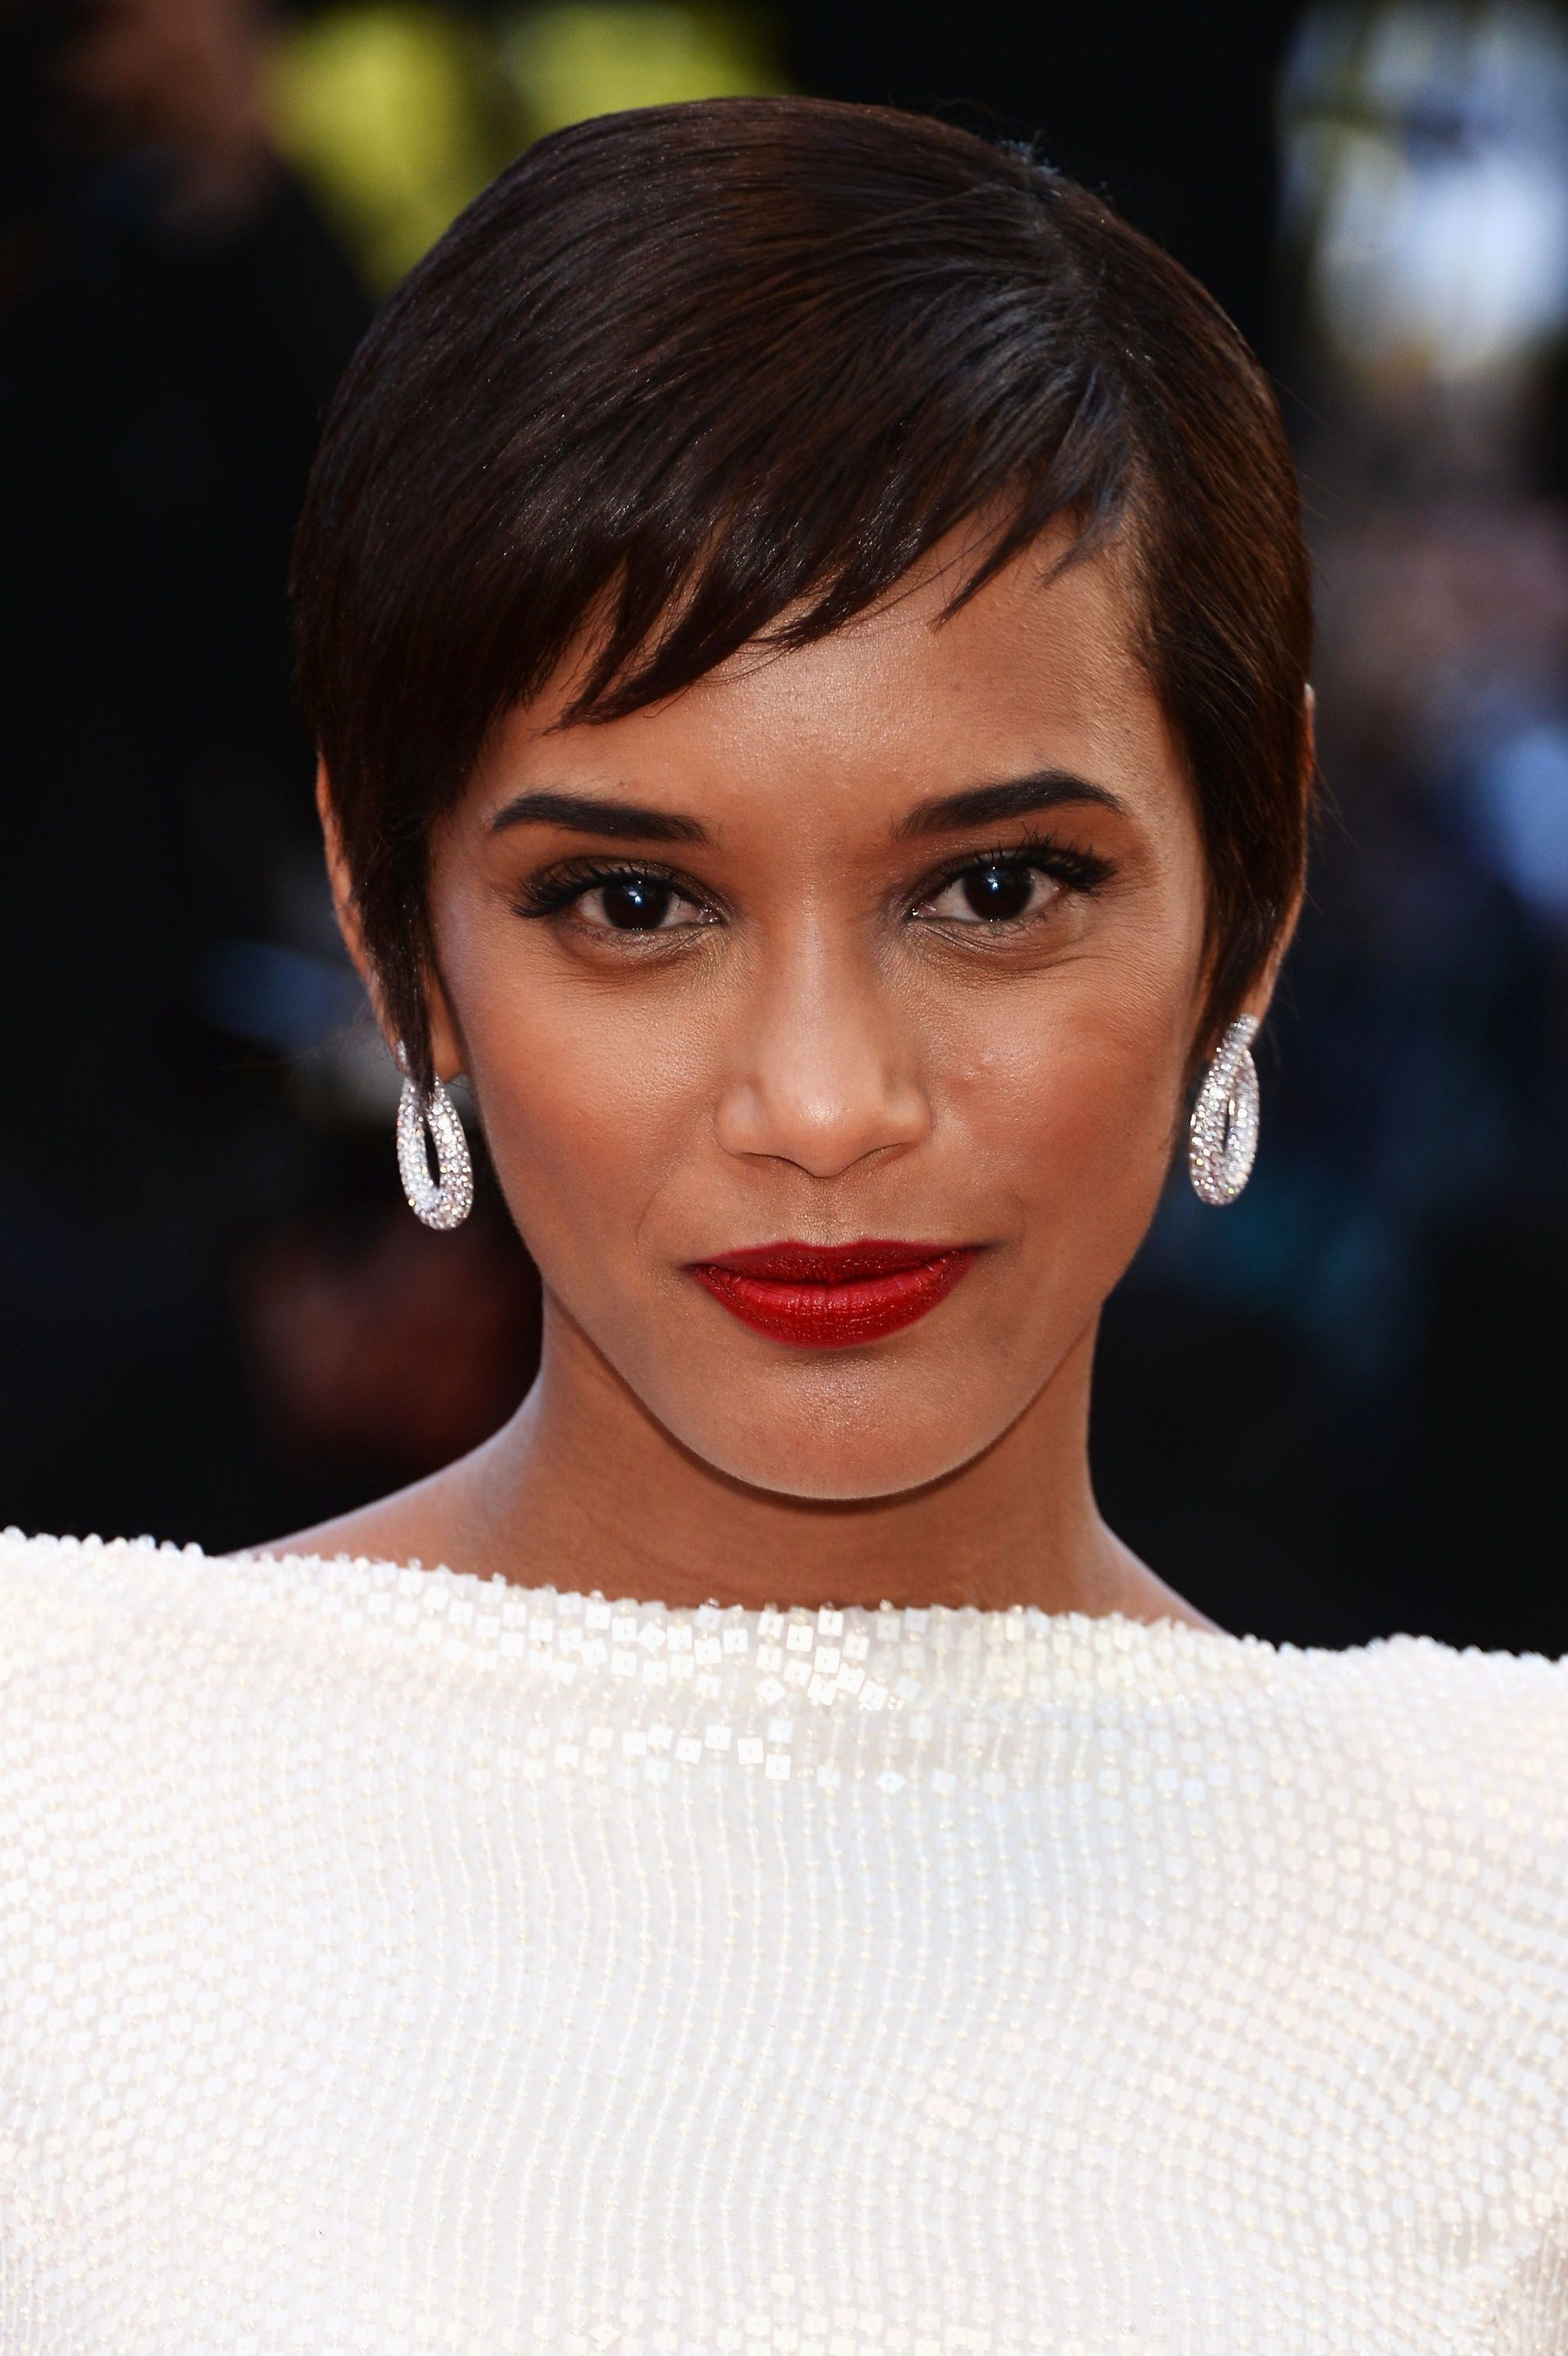 The Best 50 Iconic Celebrity Pixie Cuts 2019 Short Pixie Cuts Pictures